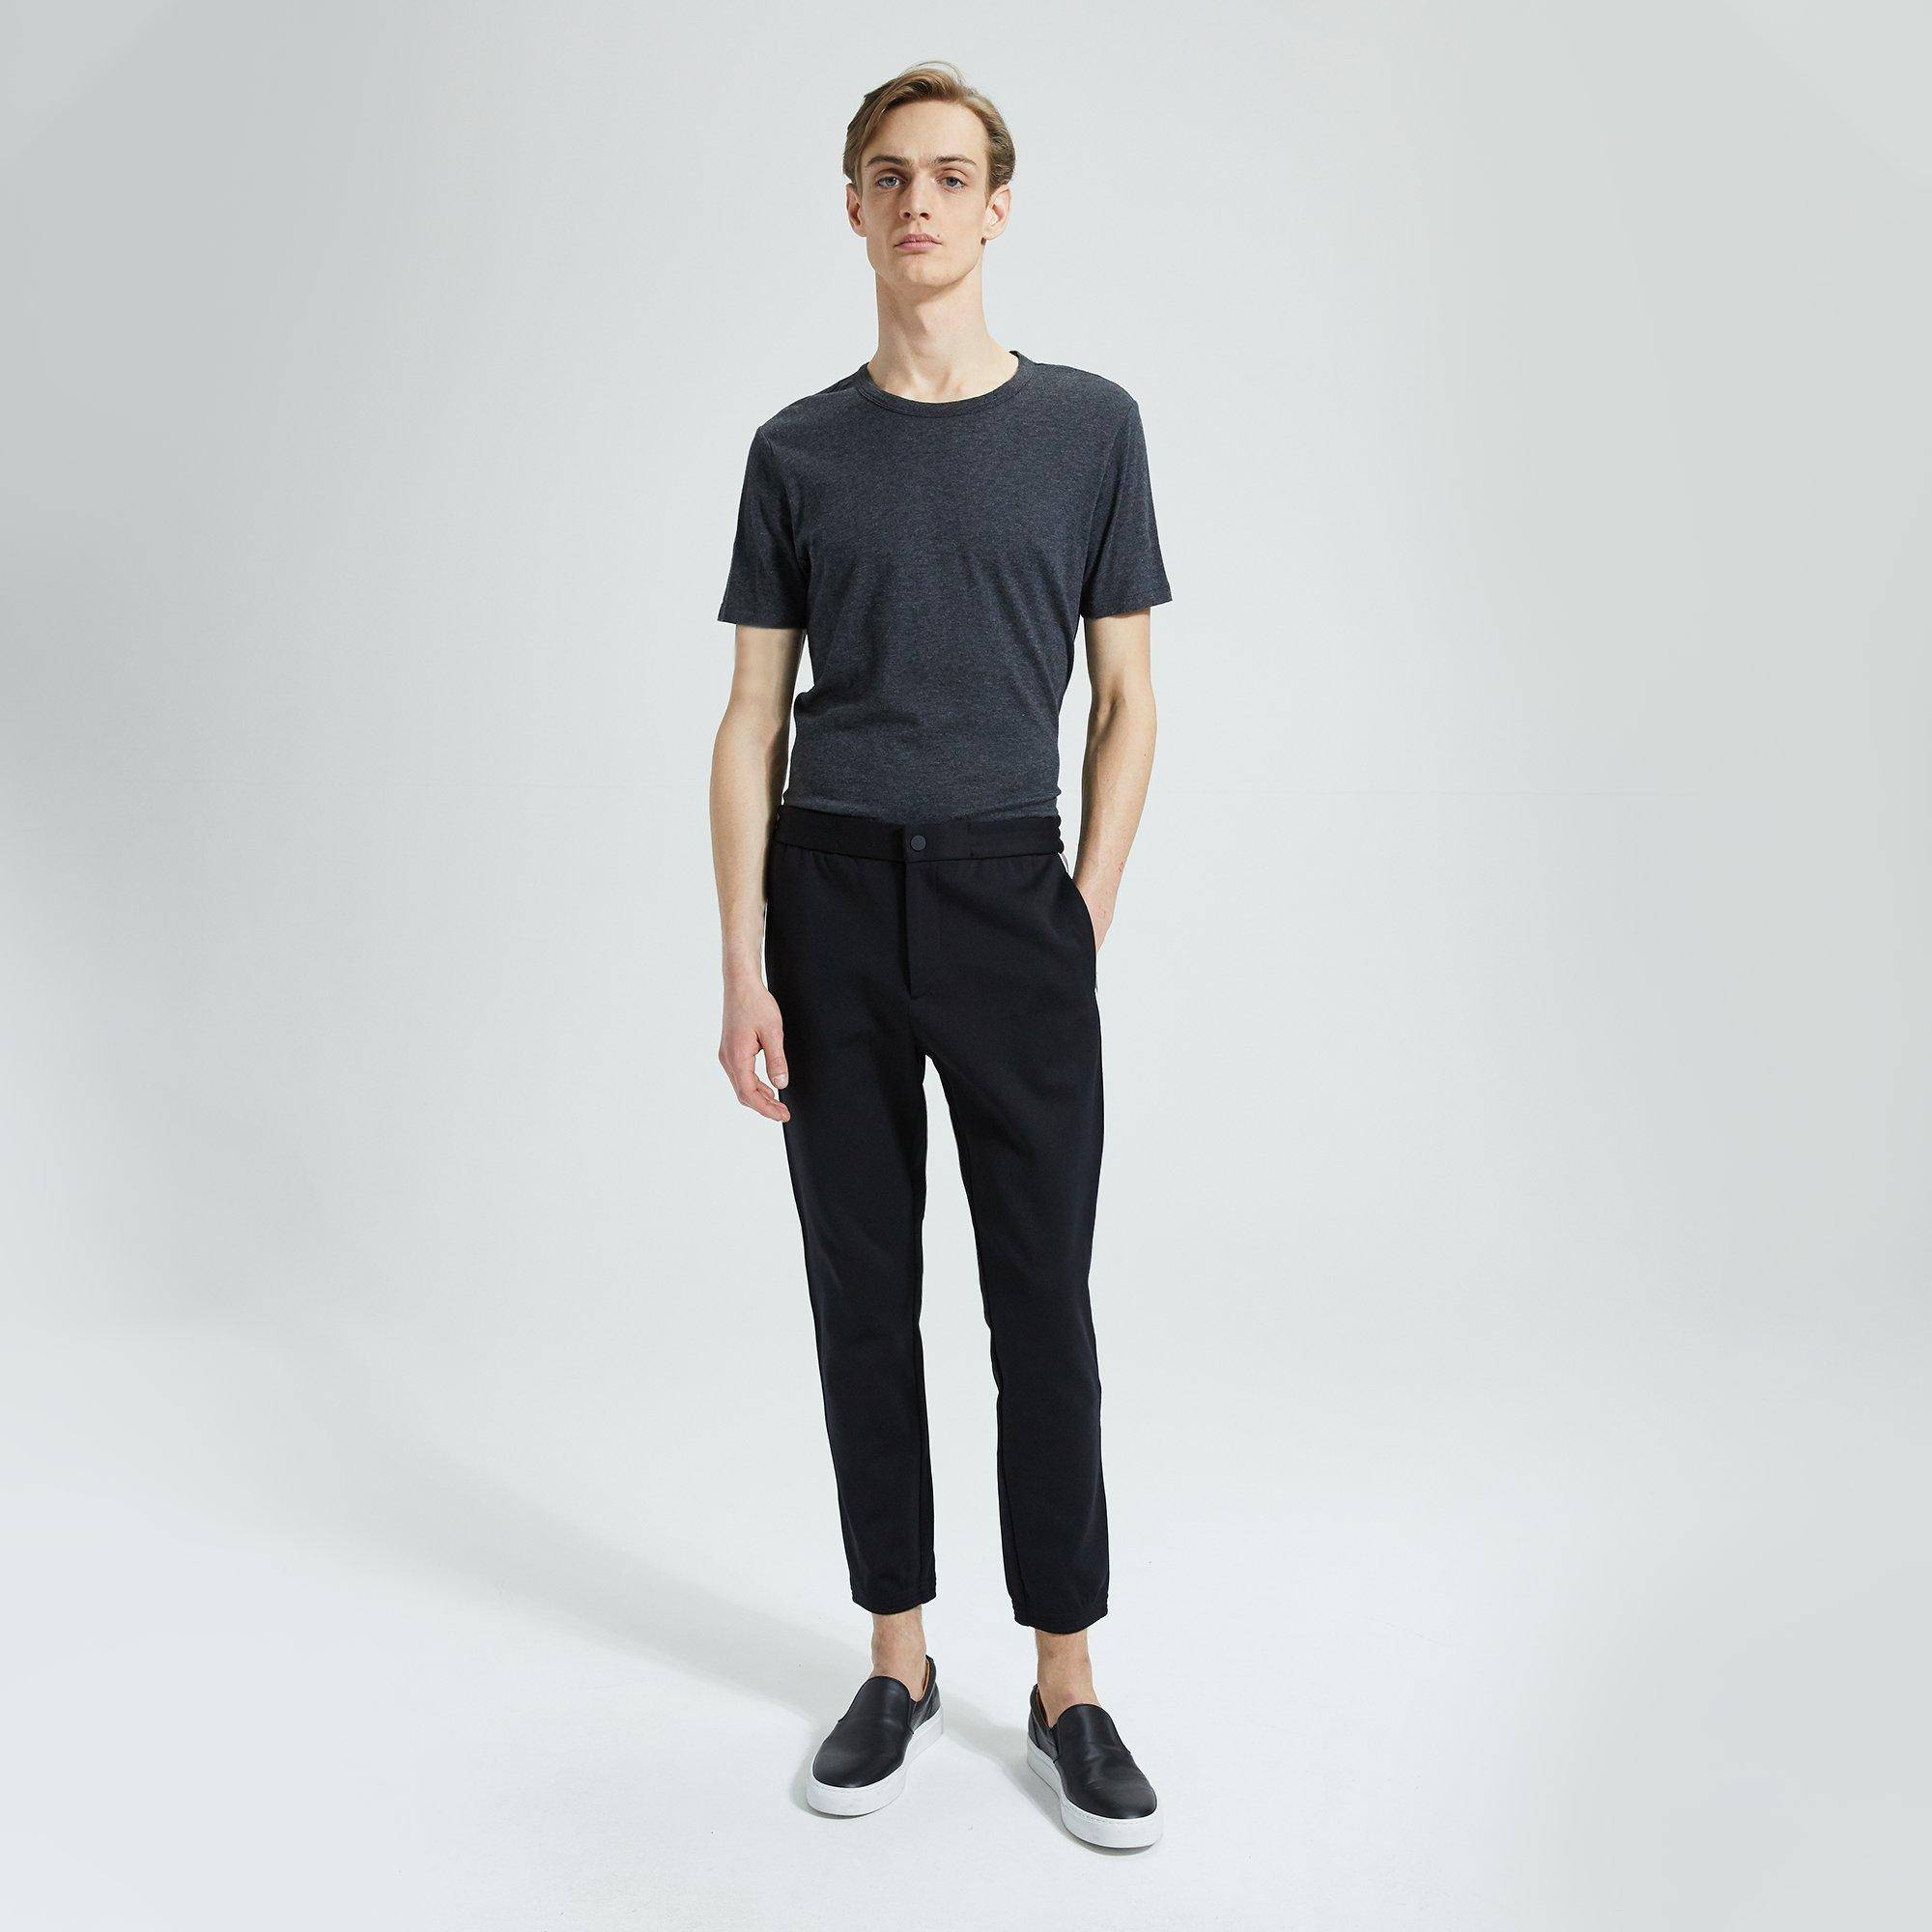 Theory Tech Face Ponte Terrance Pant  - BLACK - male - Size: Extra Large